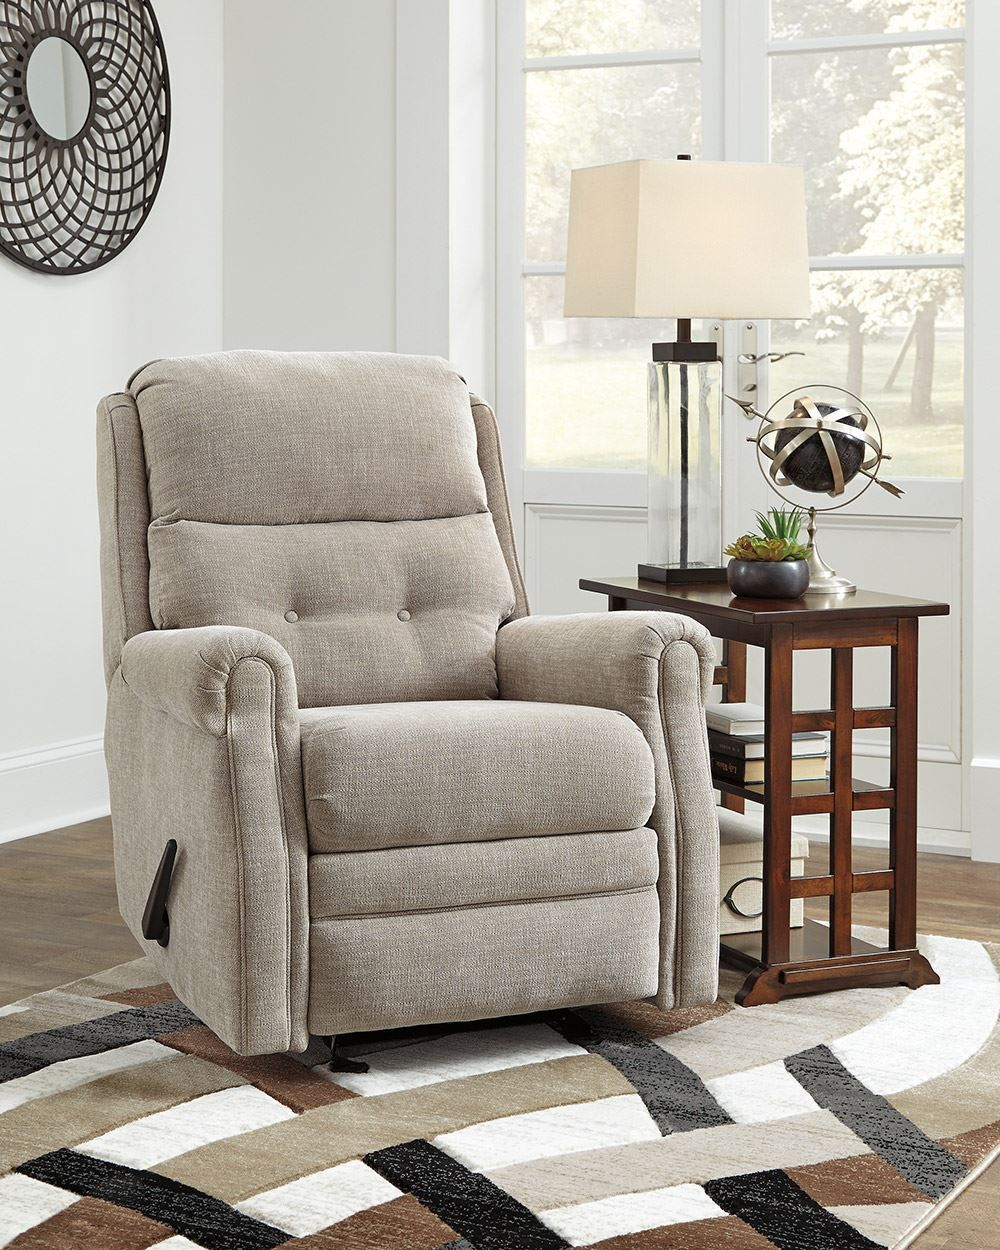 Picture of Penzberg Stone Glider Recliner